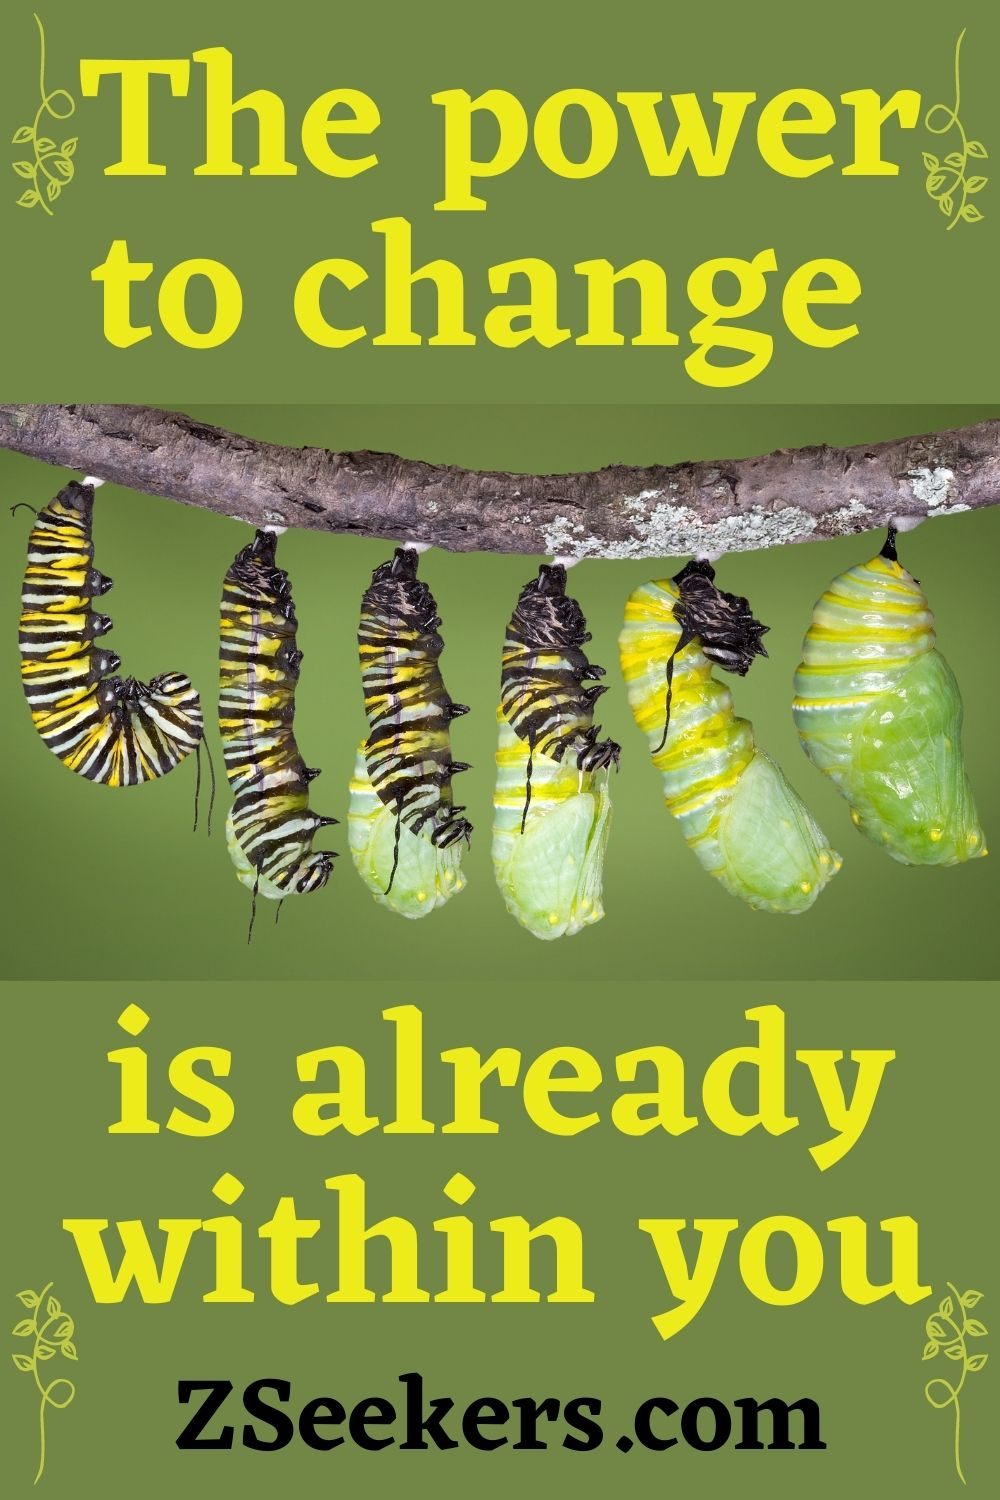 The power to change is already within you - monarch caterpillar building its cocoon